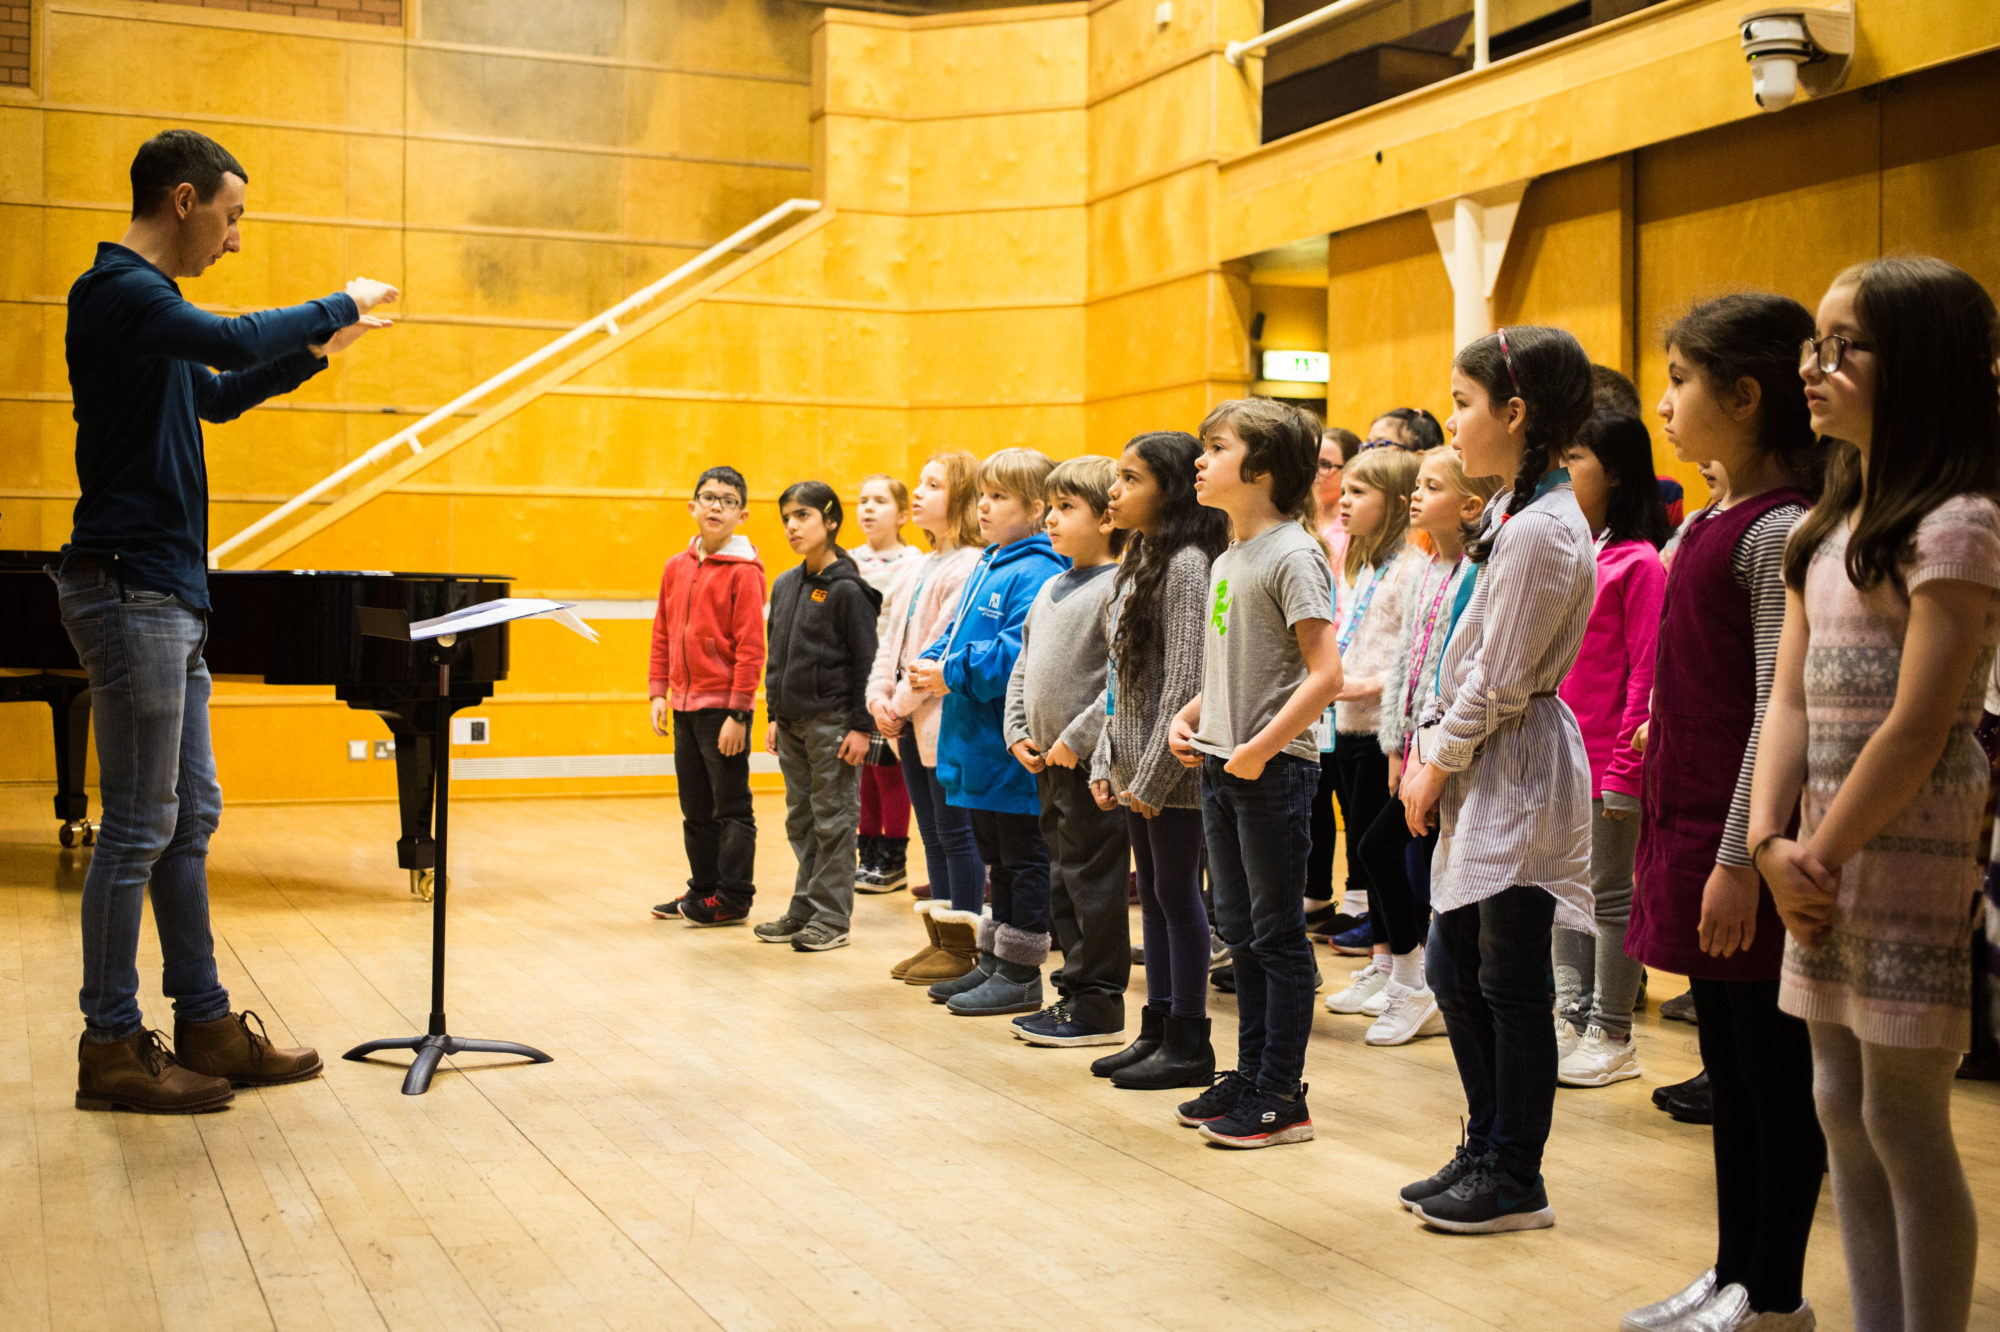 Children singing, eyes firmly fixed on the conductor. Photo Robert McFadzean, courtesy Royal Conservatoire Scotland